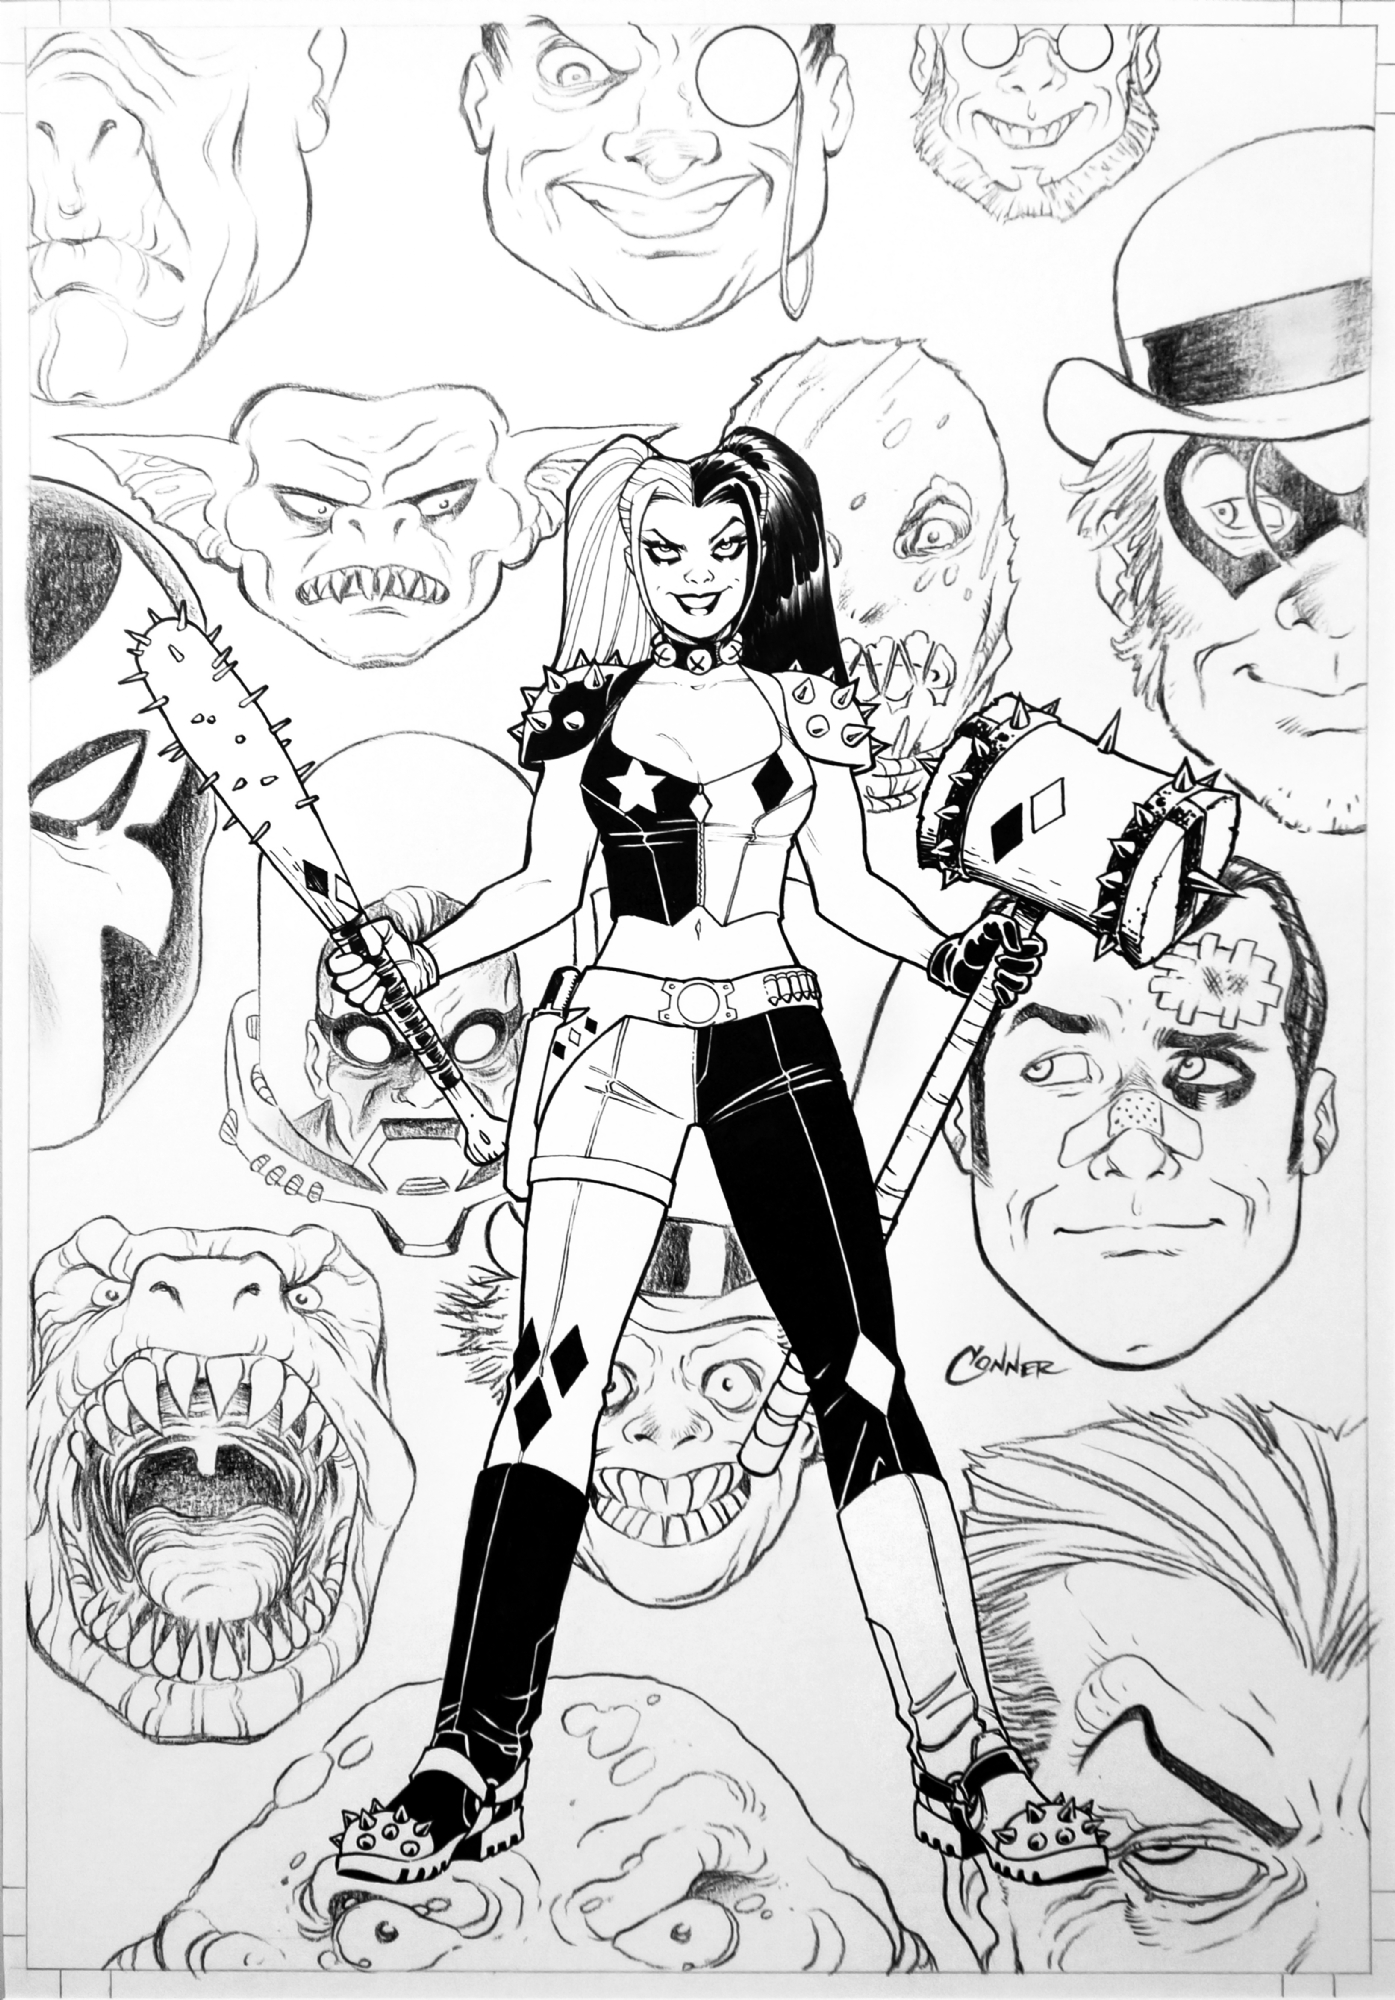 Amanda Conner Harley Quinn 24 Vol 2 Cover In Marc W S 02 Covers Comic Art Gallery Room